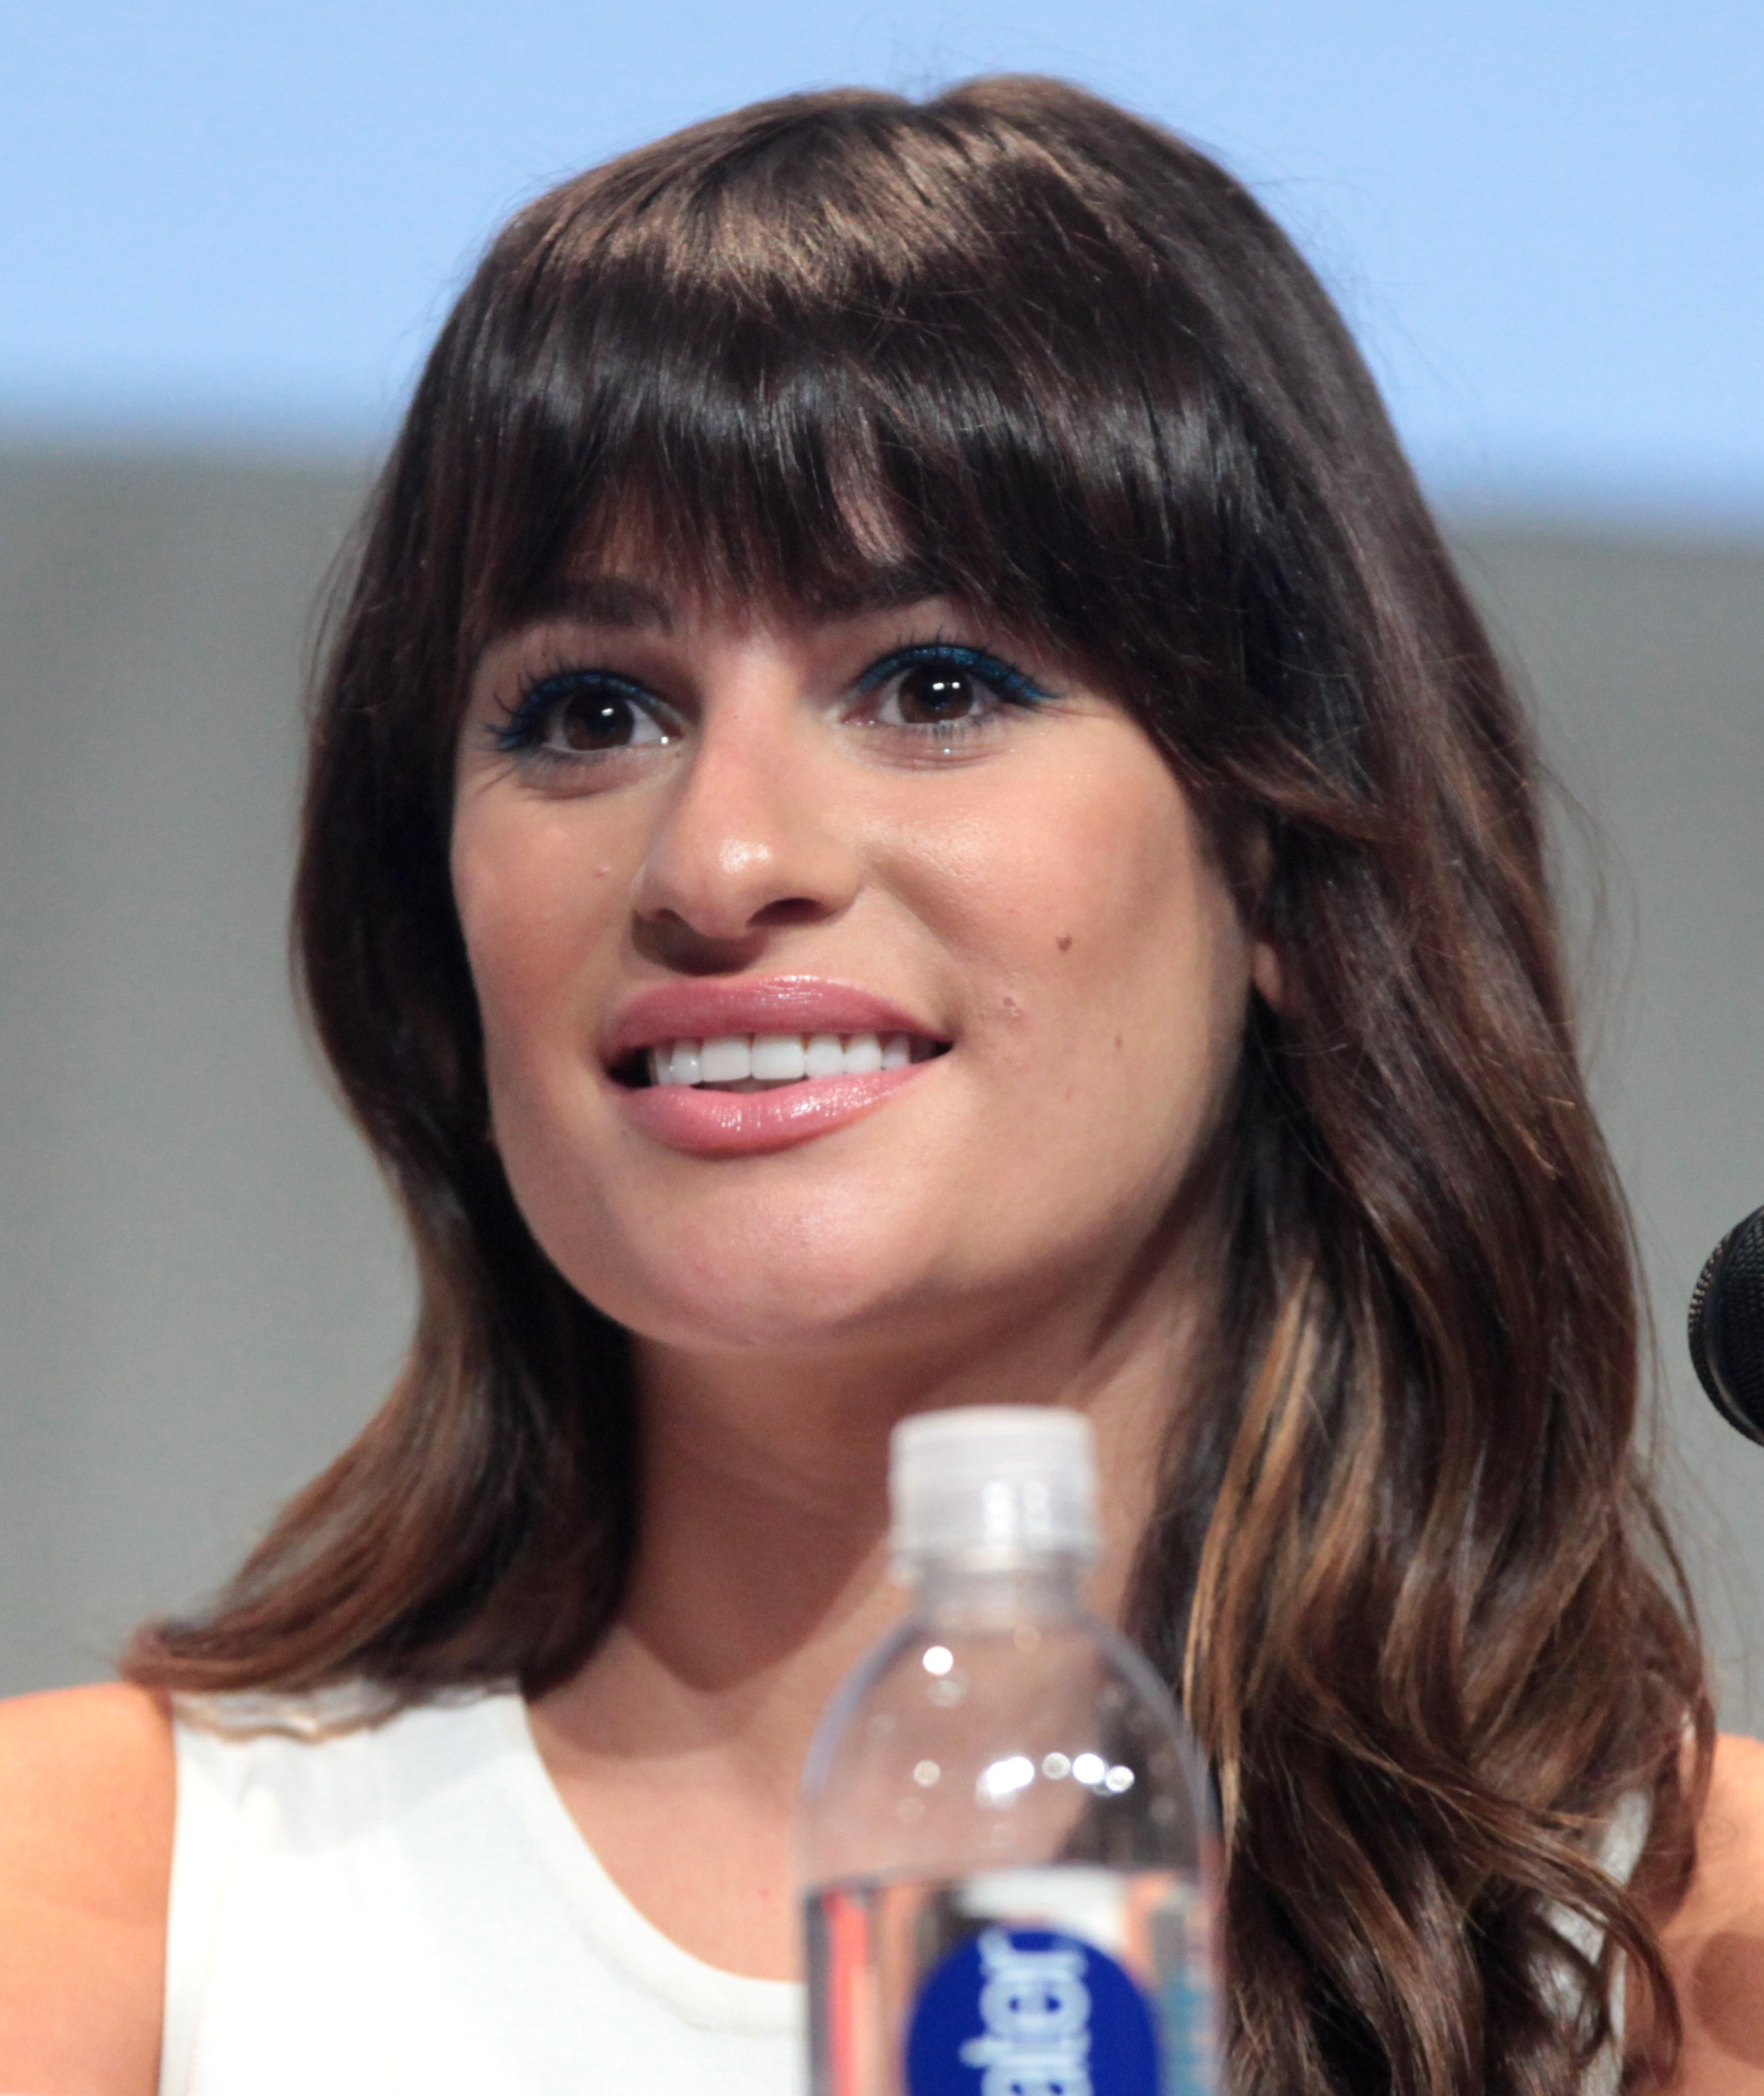 The 32-year old daughter of father Mark D Sarfati and mother Edith T Sarfati Lea Michele in 2018 photo. Lea Michele earned a  million dollar salary - leaving the net worth at 10 million in 2018